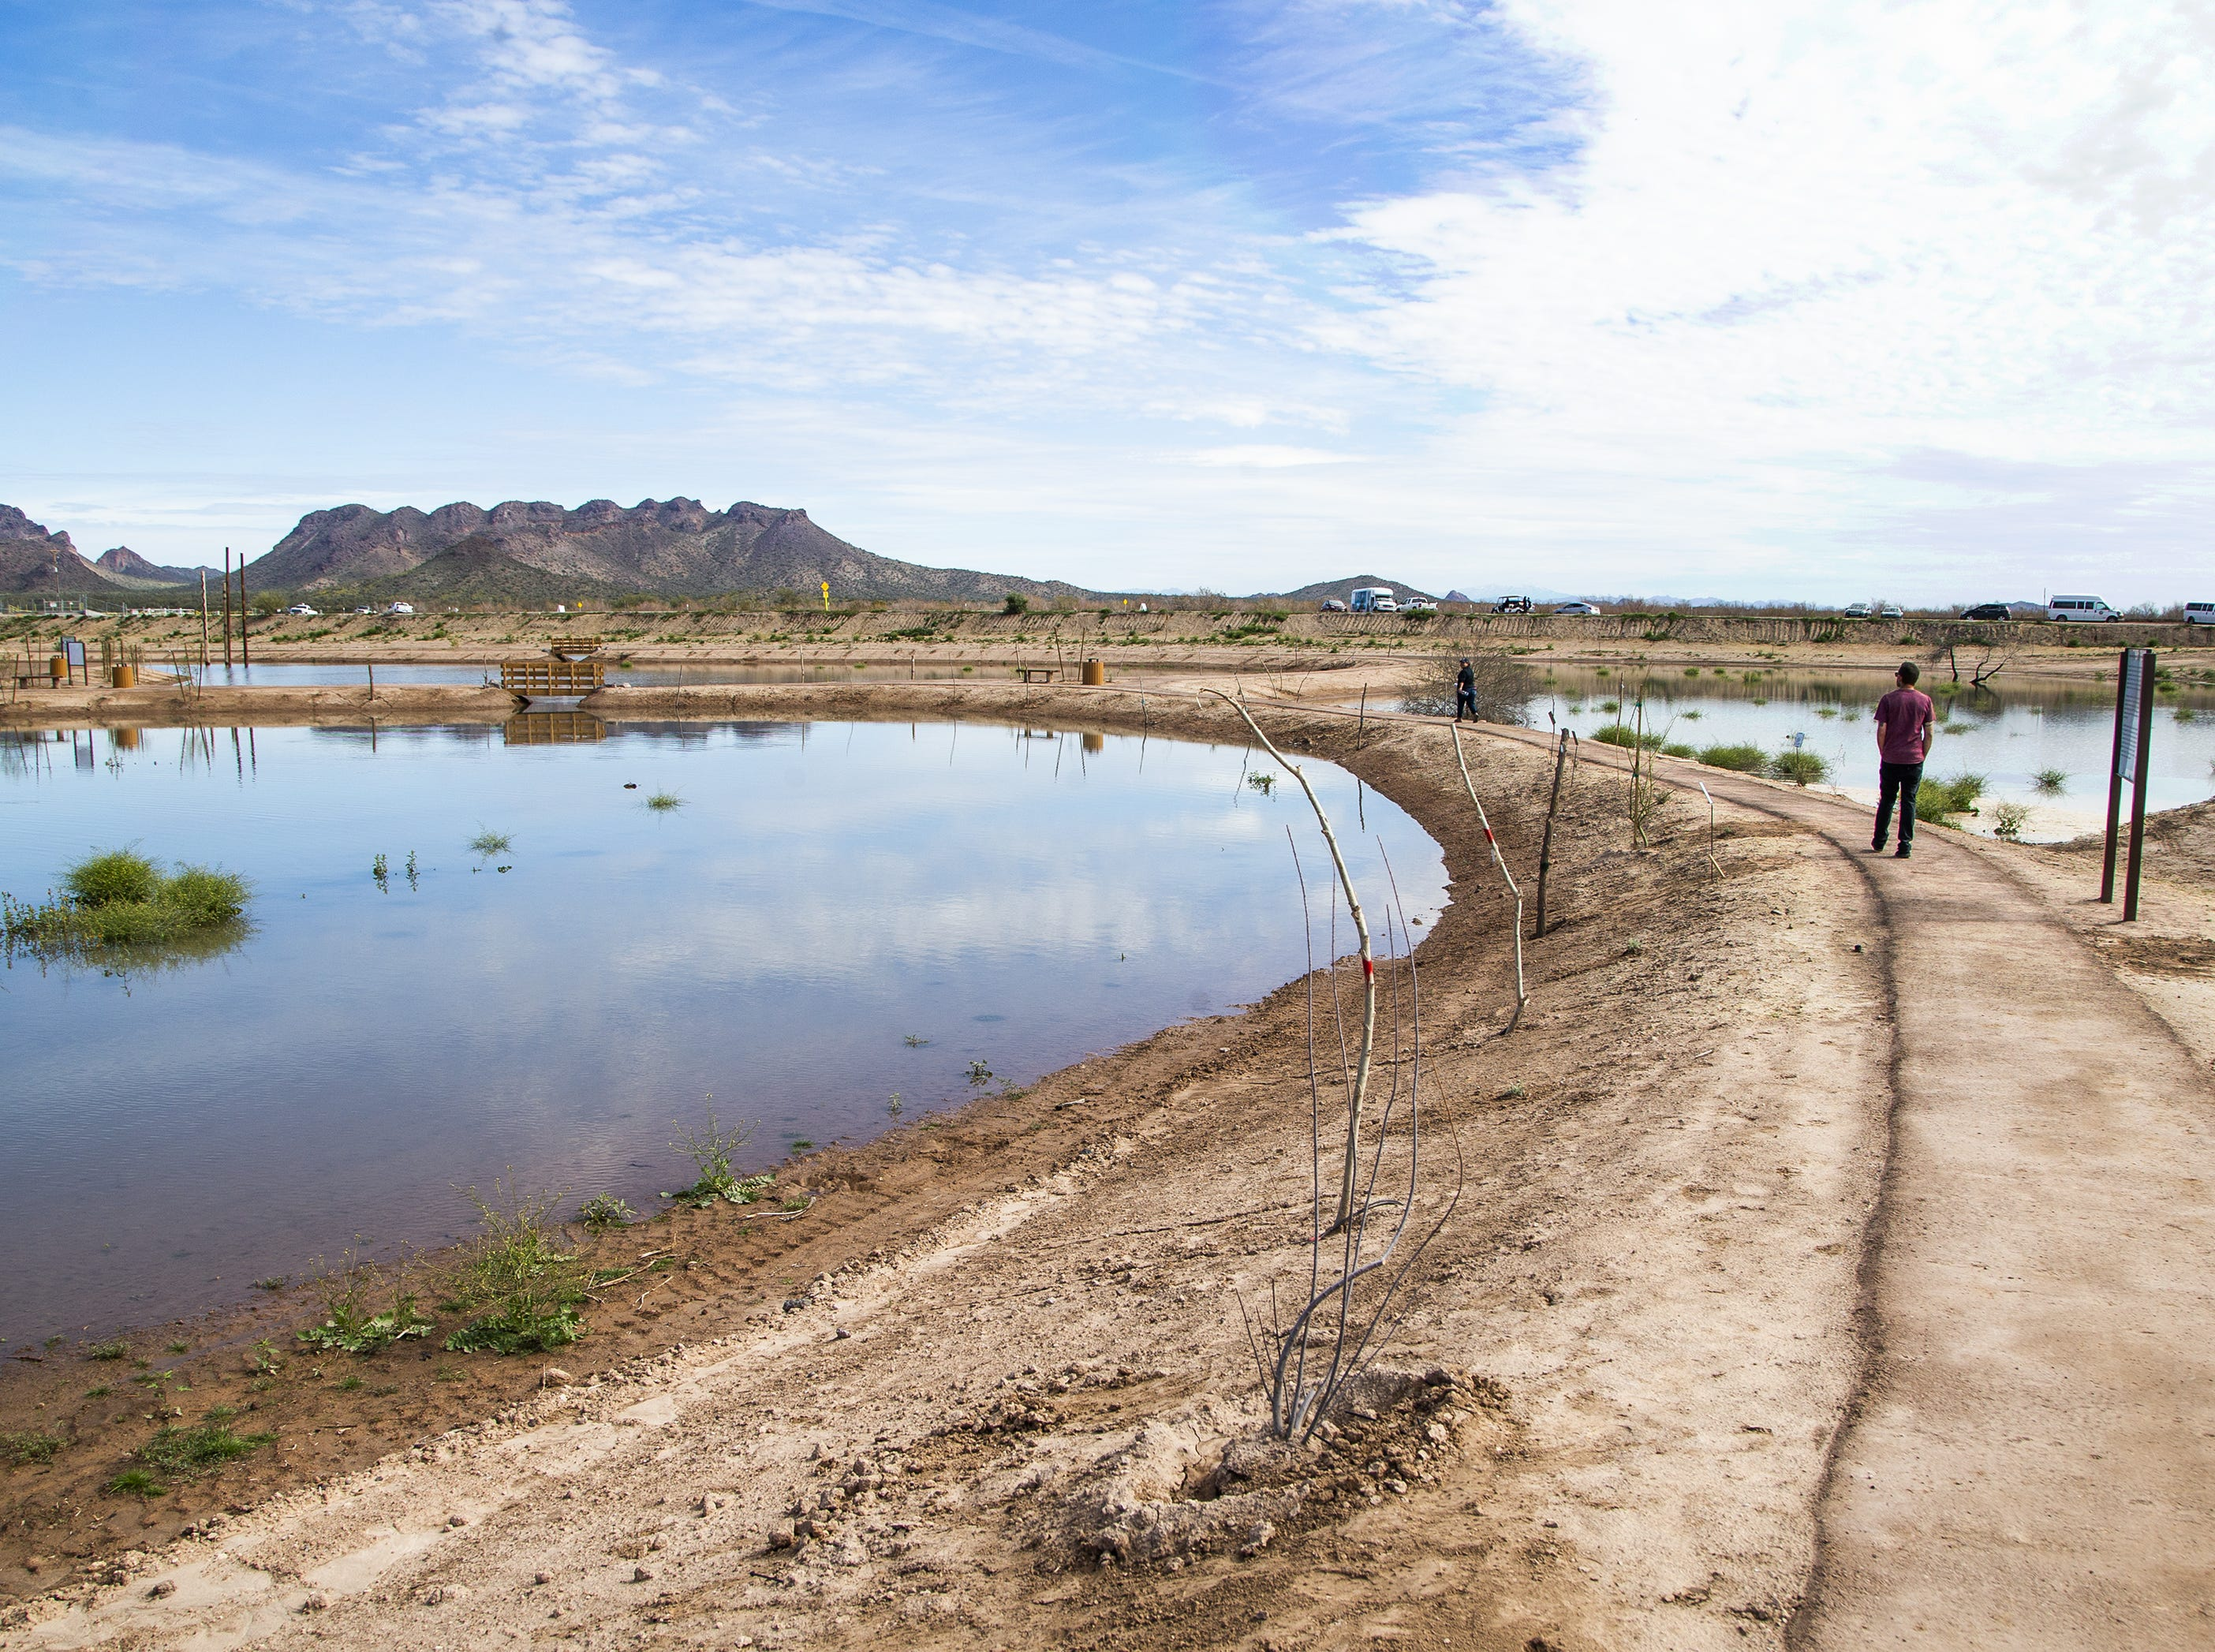 A man takes the trail during the MAR 5 Interpretive Trail grand opening ceremony near Sacaton, Friday, March 1, 2019.